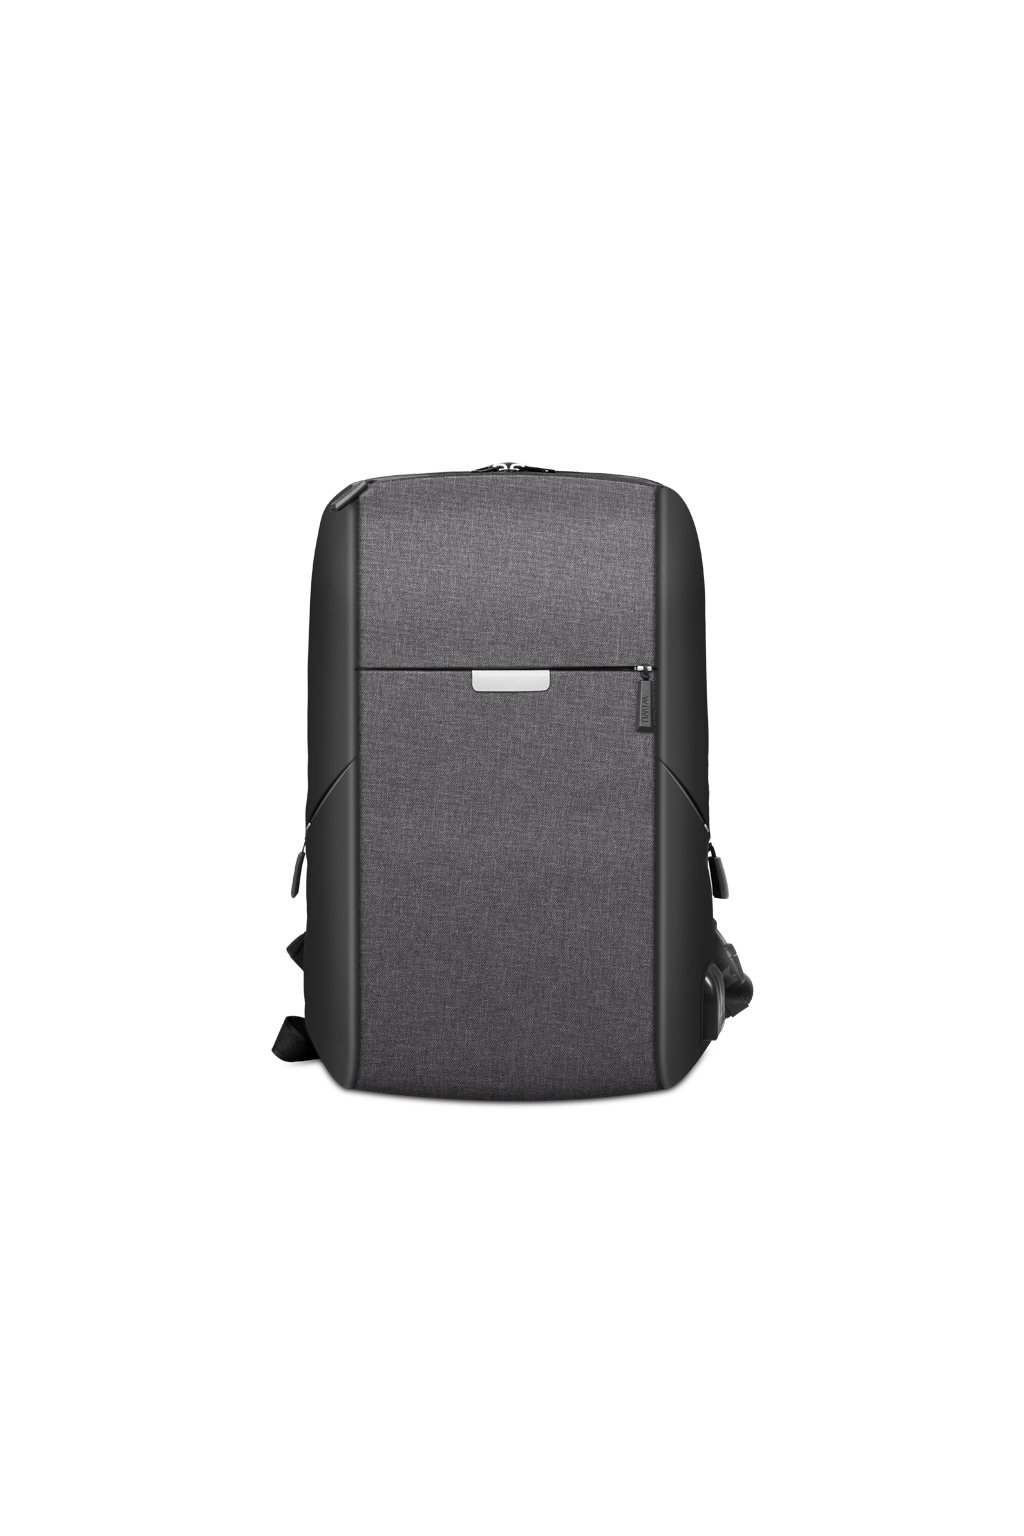 WiWU Batoh na laptop Onepack Backpack